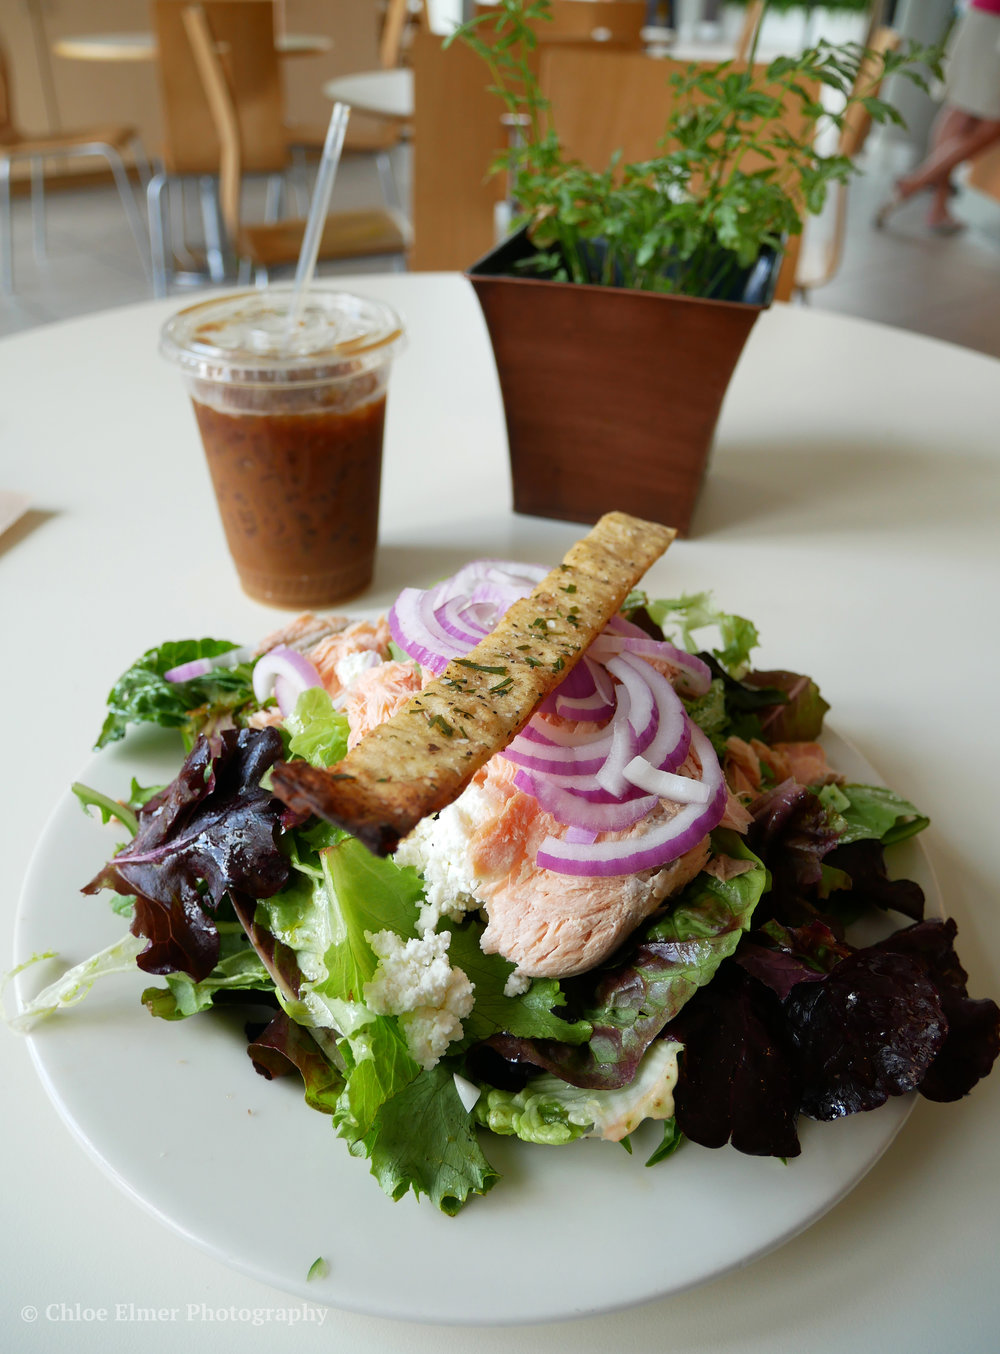 Phipps had the most AMAZINGLY fresh food at their cafe. I had a salmon salad before heading home! Highly recommend!